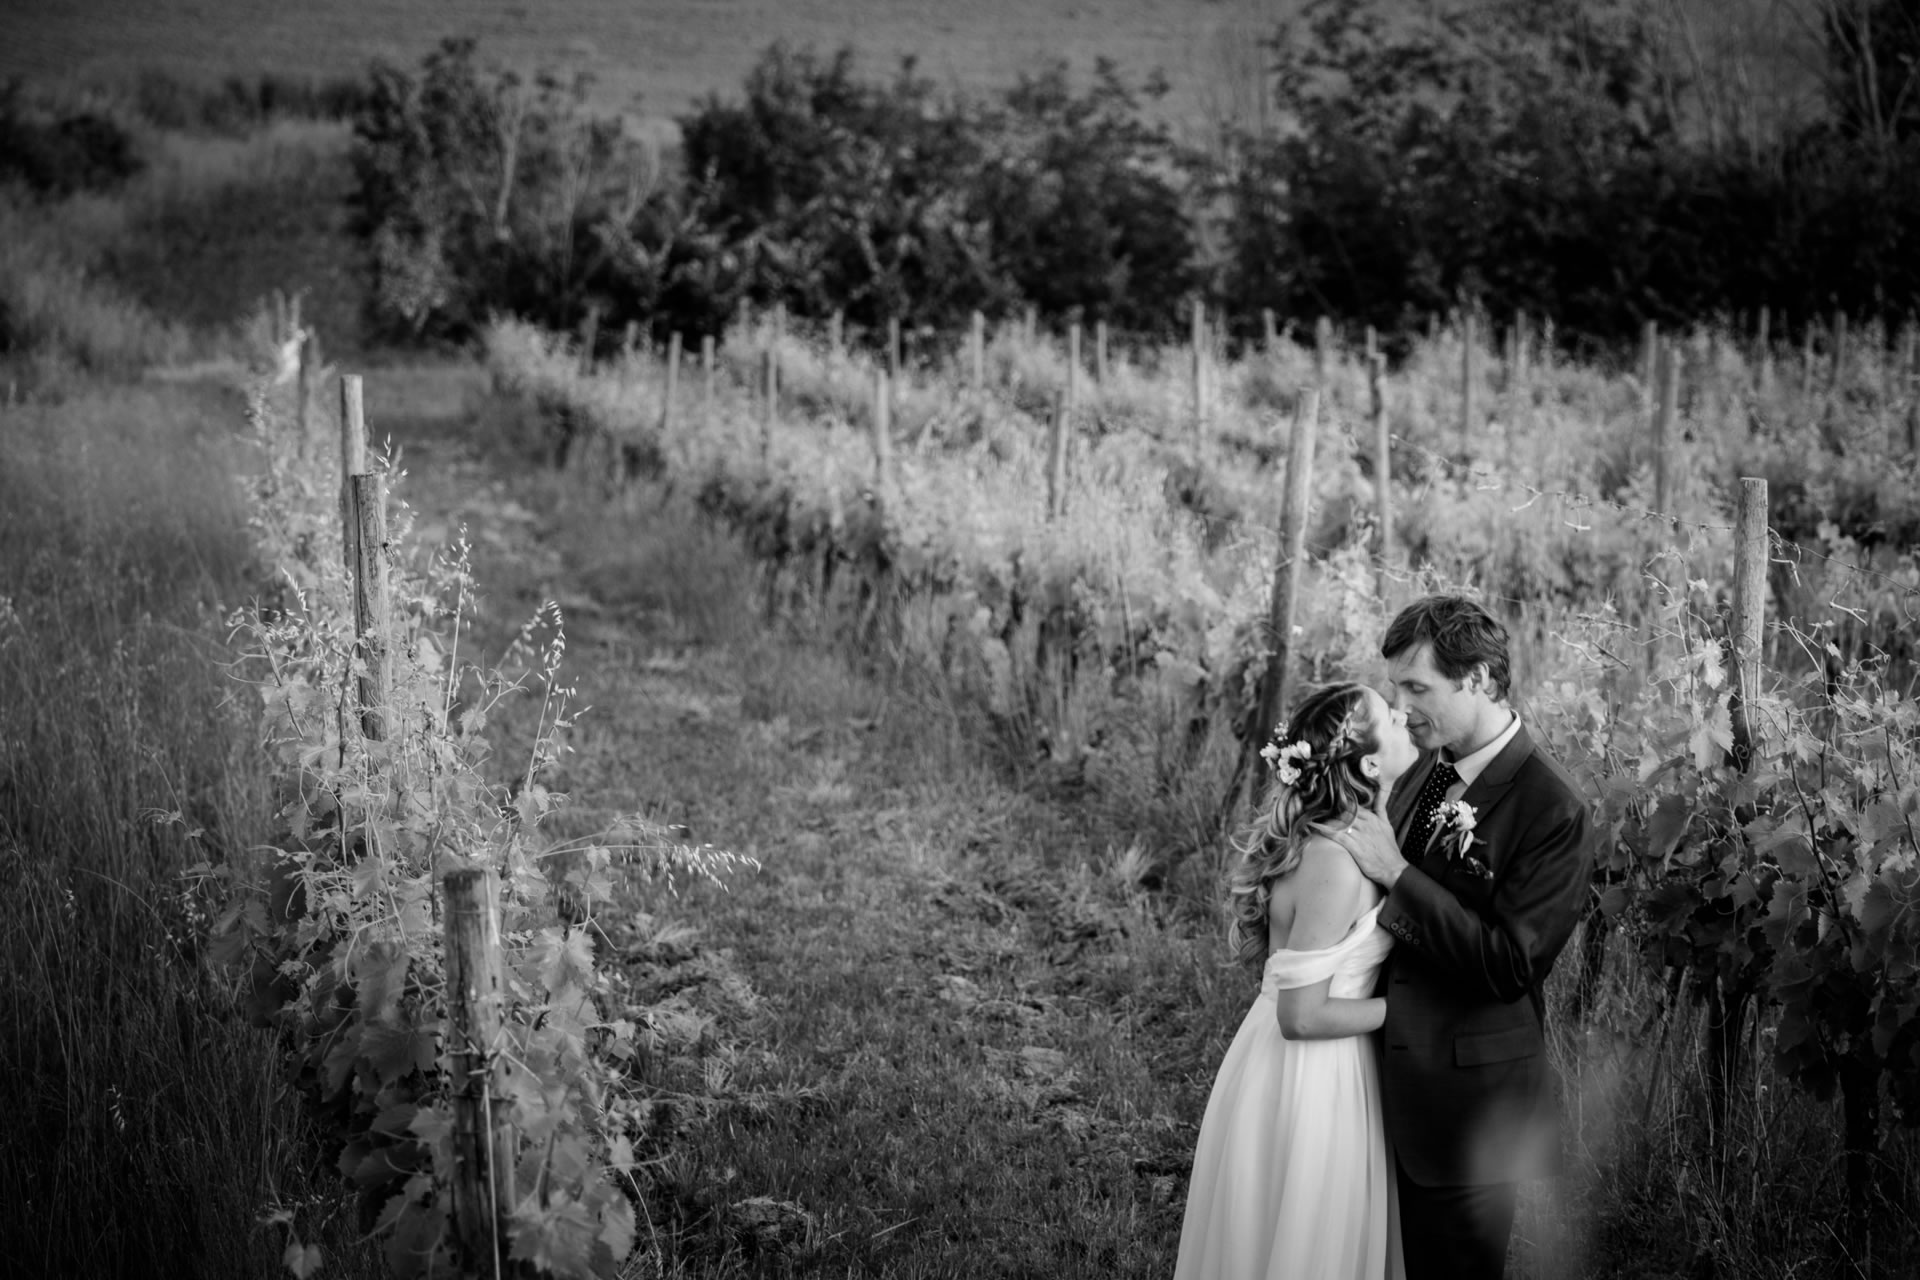 Kiss - 41 :: Wedding in Perugia countryside. Jean and Toby :: Luxury wedding photography - 40 :: Kiss - 41